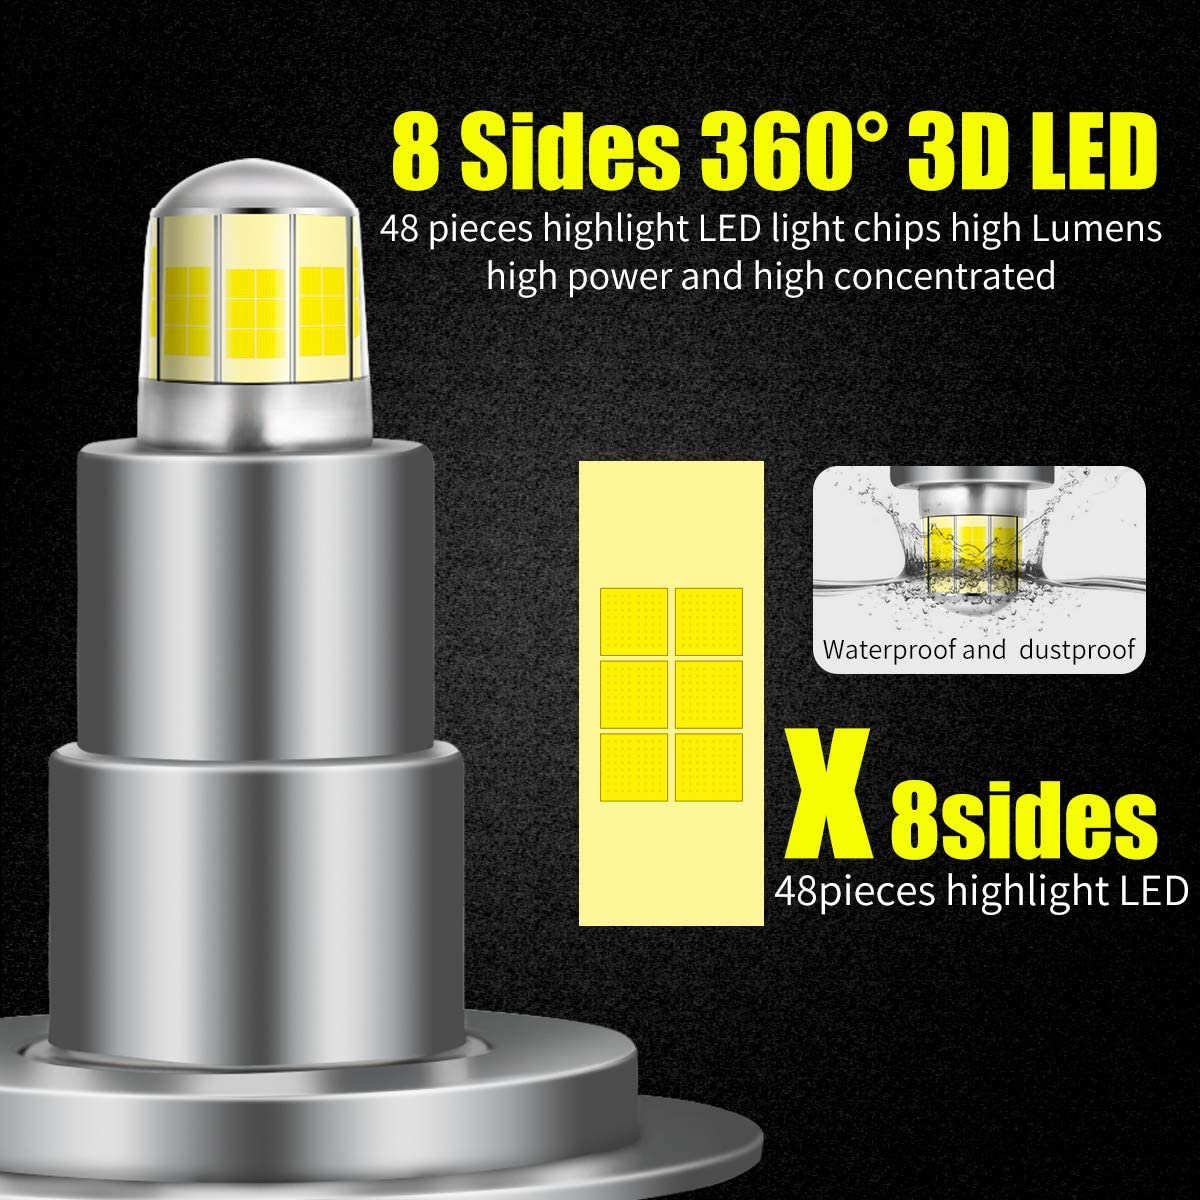 Pack of 2 H7 LED Headlight Bulb 80W 16000LM Bright 6000K Cool White 2020 Upgraded 8 Sides CSP Chips 360 Degree Adjustable Beam H7 LED Conversion Kit Recommended for Projector Headlights